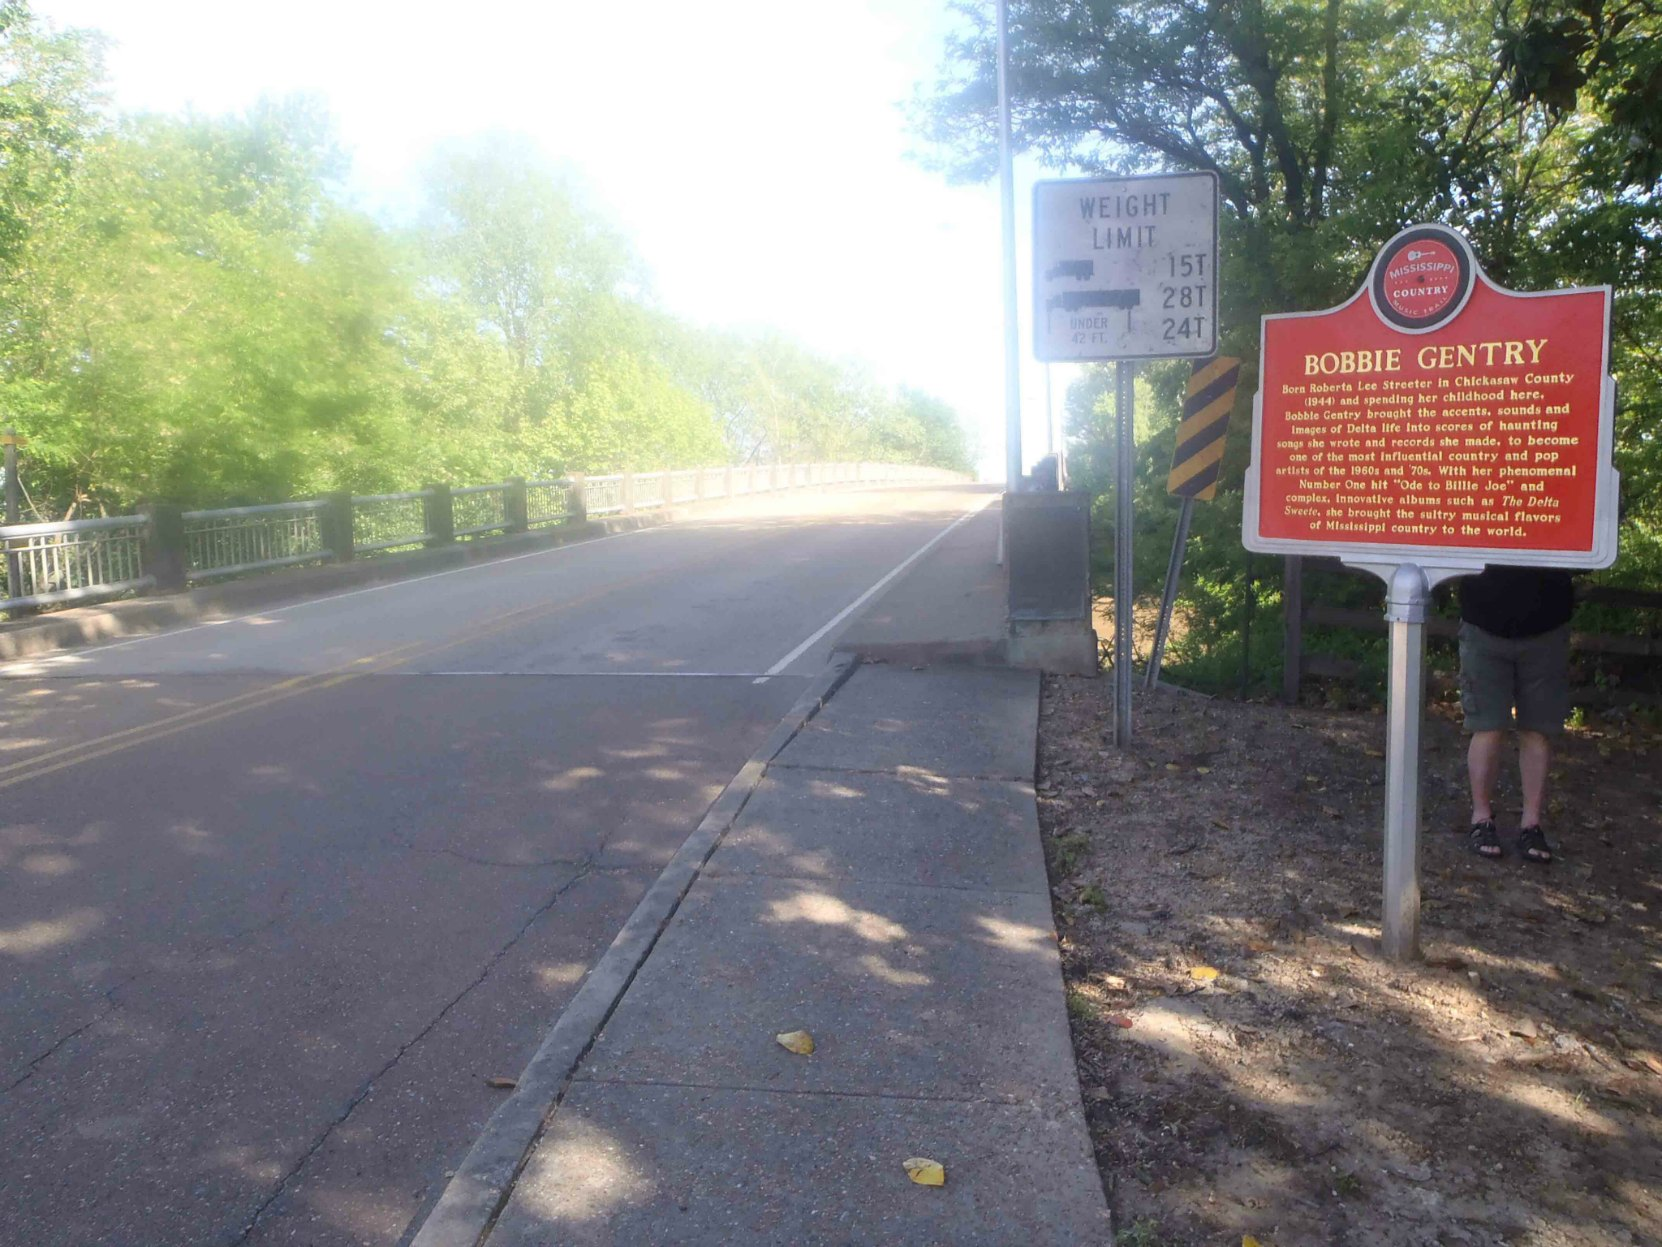 The Mississippi Country Music Trail marker for Bobbie Gentry, is at the entrance to a bridge over the Tallahatchie River on Grand Avenue, Greenwood, Mississippi